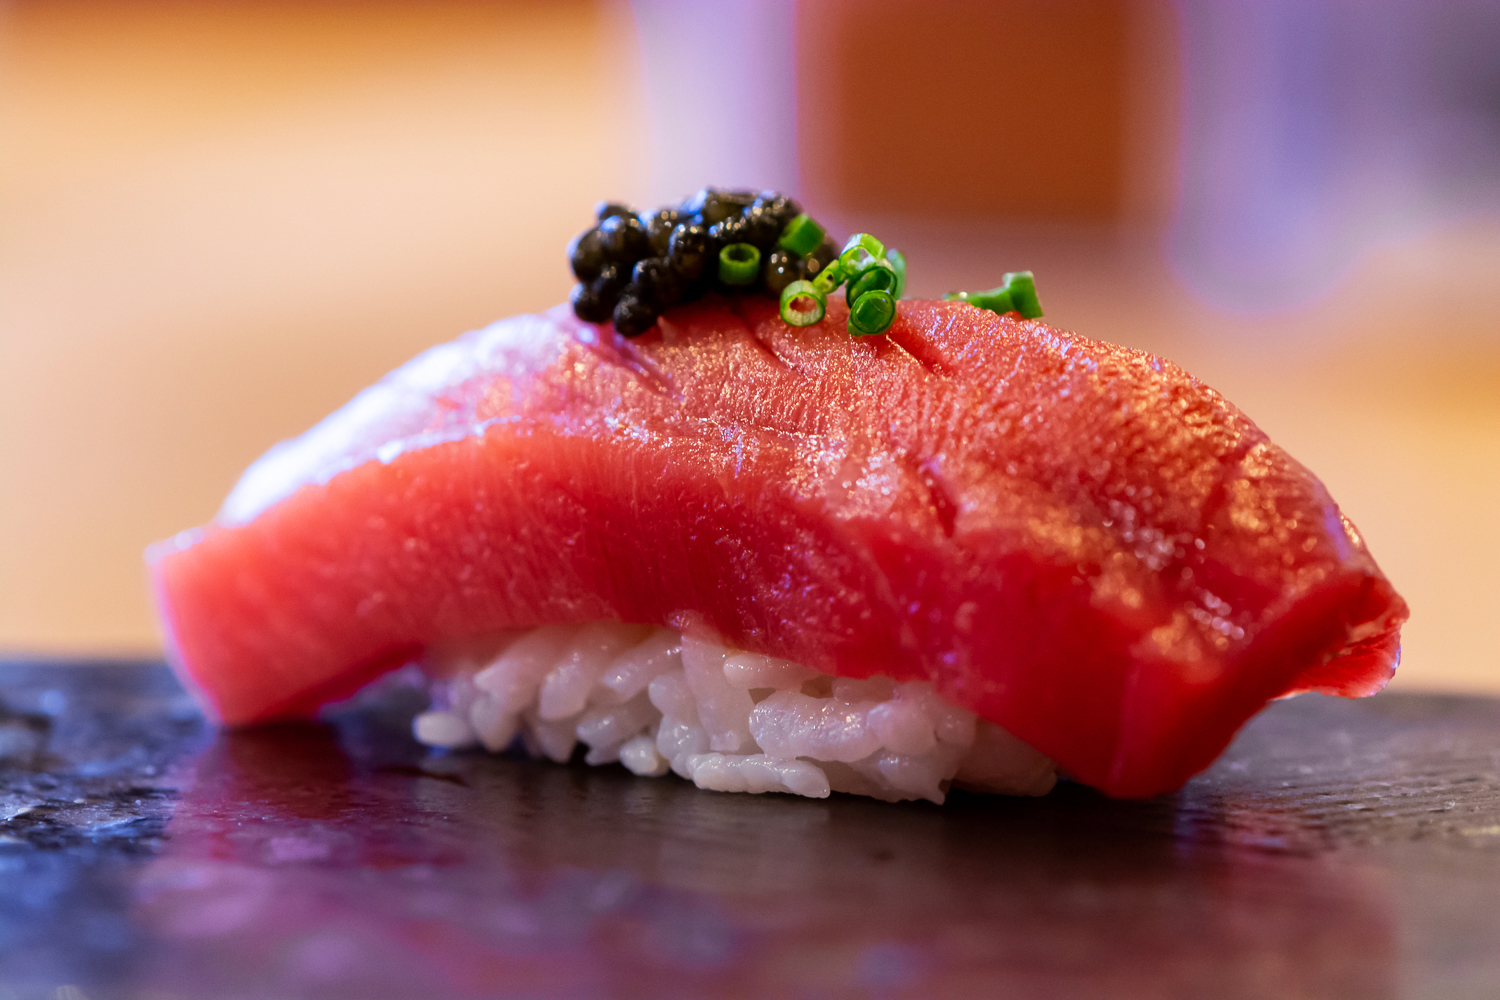 chu toro (medium fatty tuna) nigiri - topped with caviar